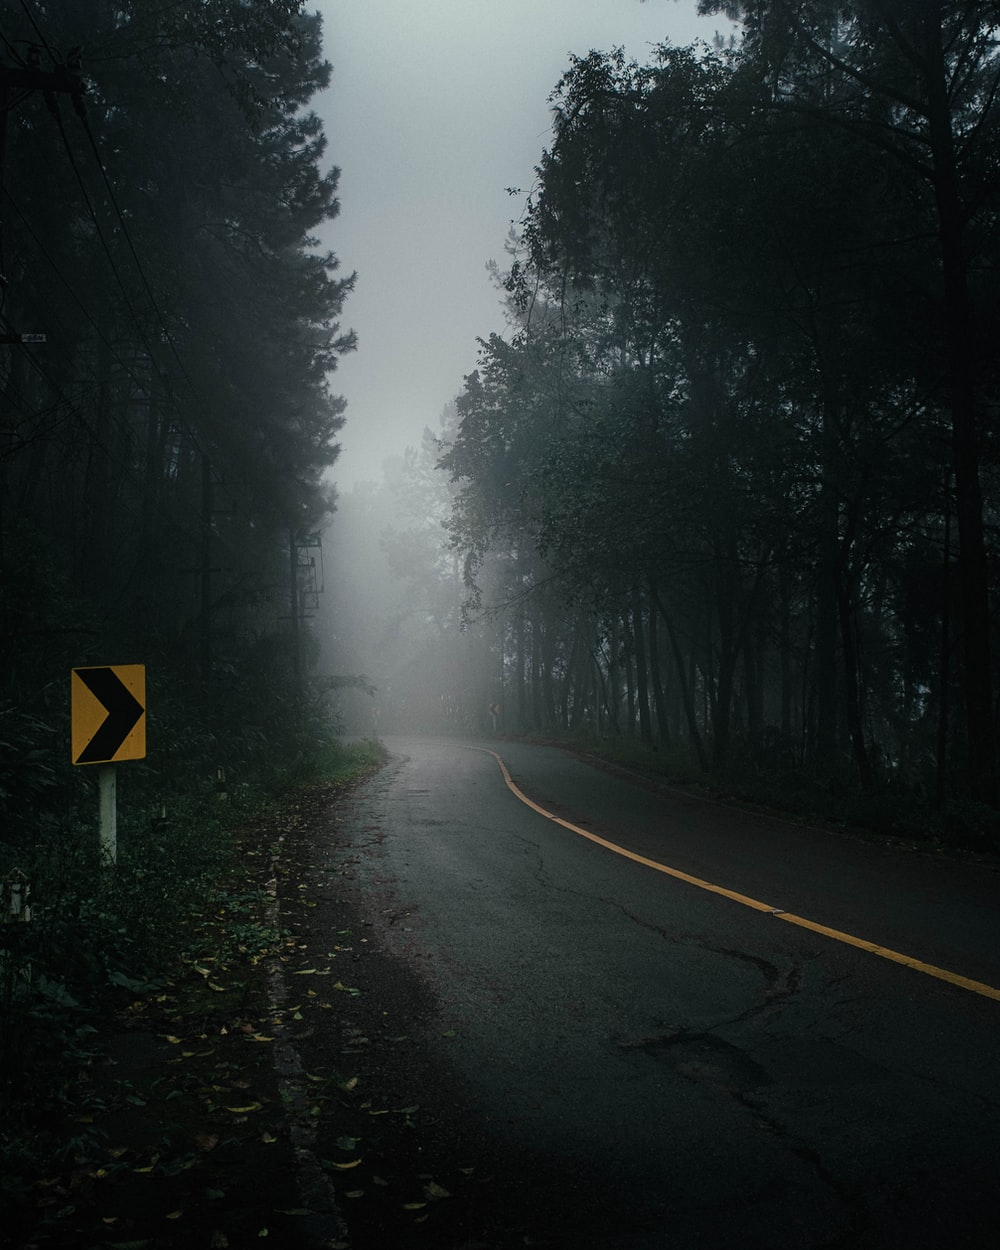 yellow and black road sign on road between trees covered with fog